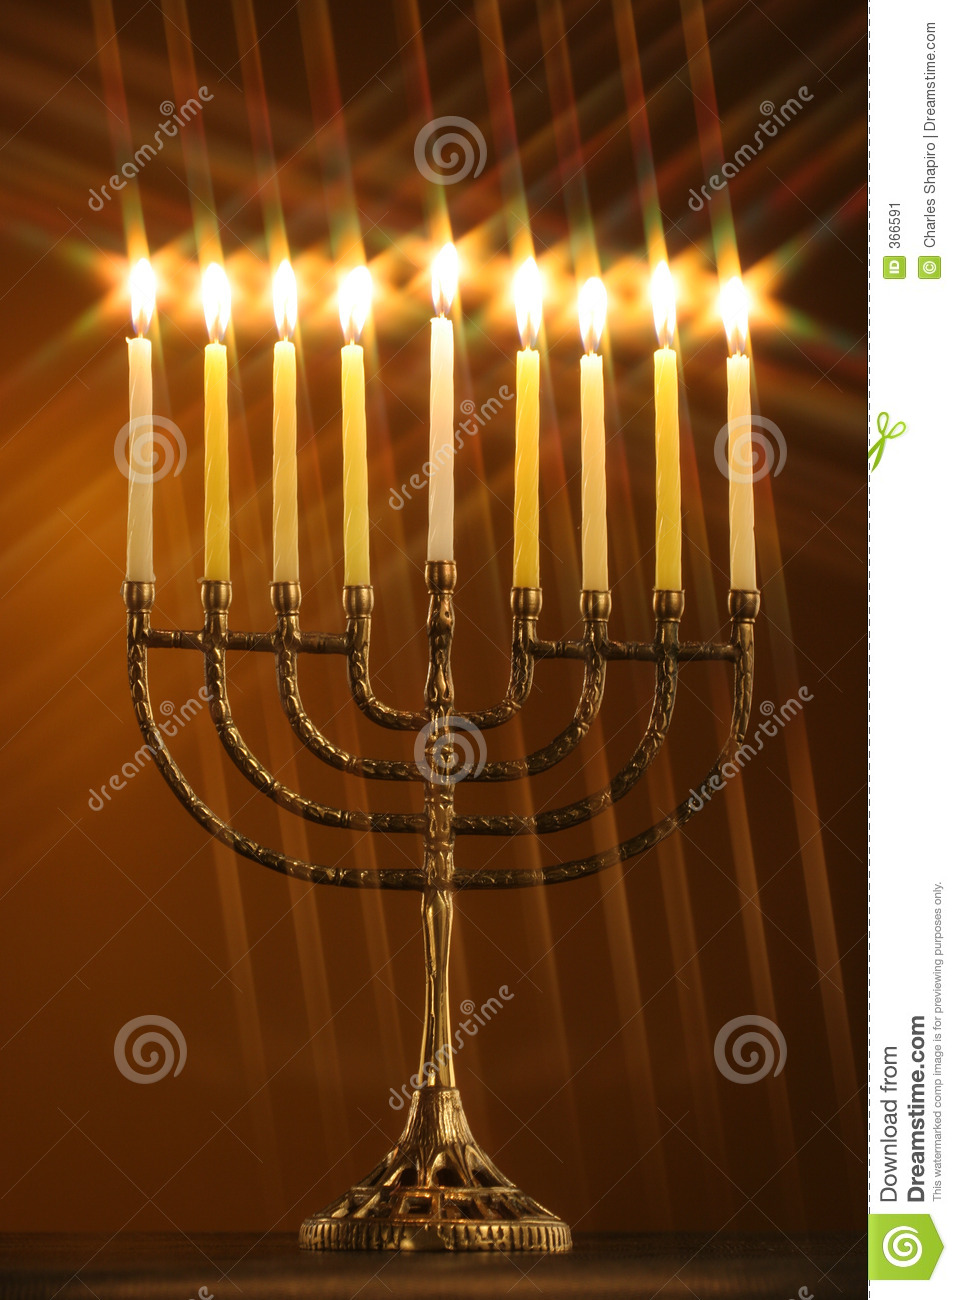 All Candle Lite On The Traditional Hanukkah Menorah With